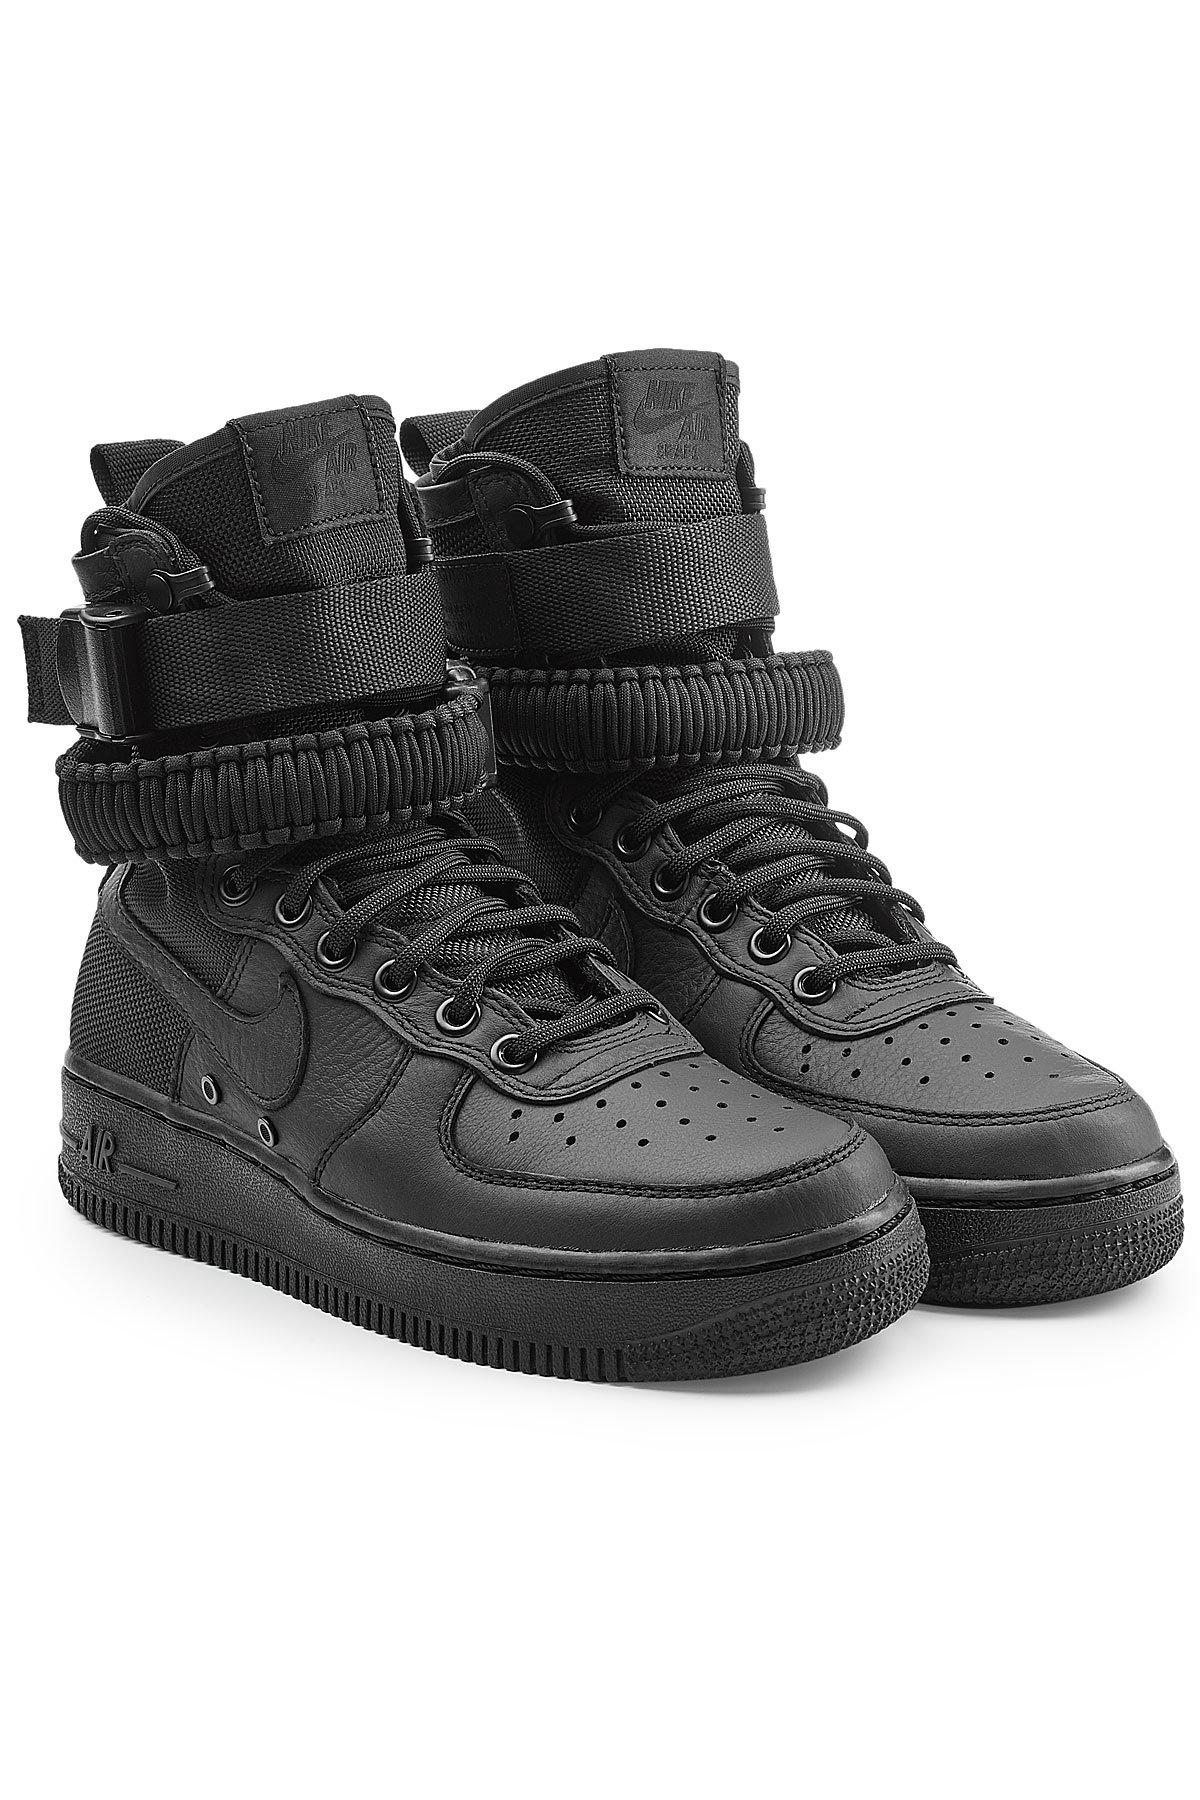 Nike SF Air Force 1 Mid Top Sneakers with Leather and Mesh Gr. US 8.5 m2CL0fQfCT